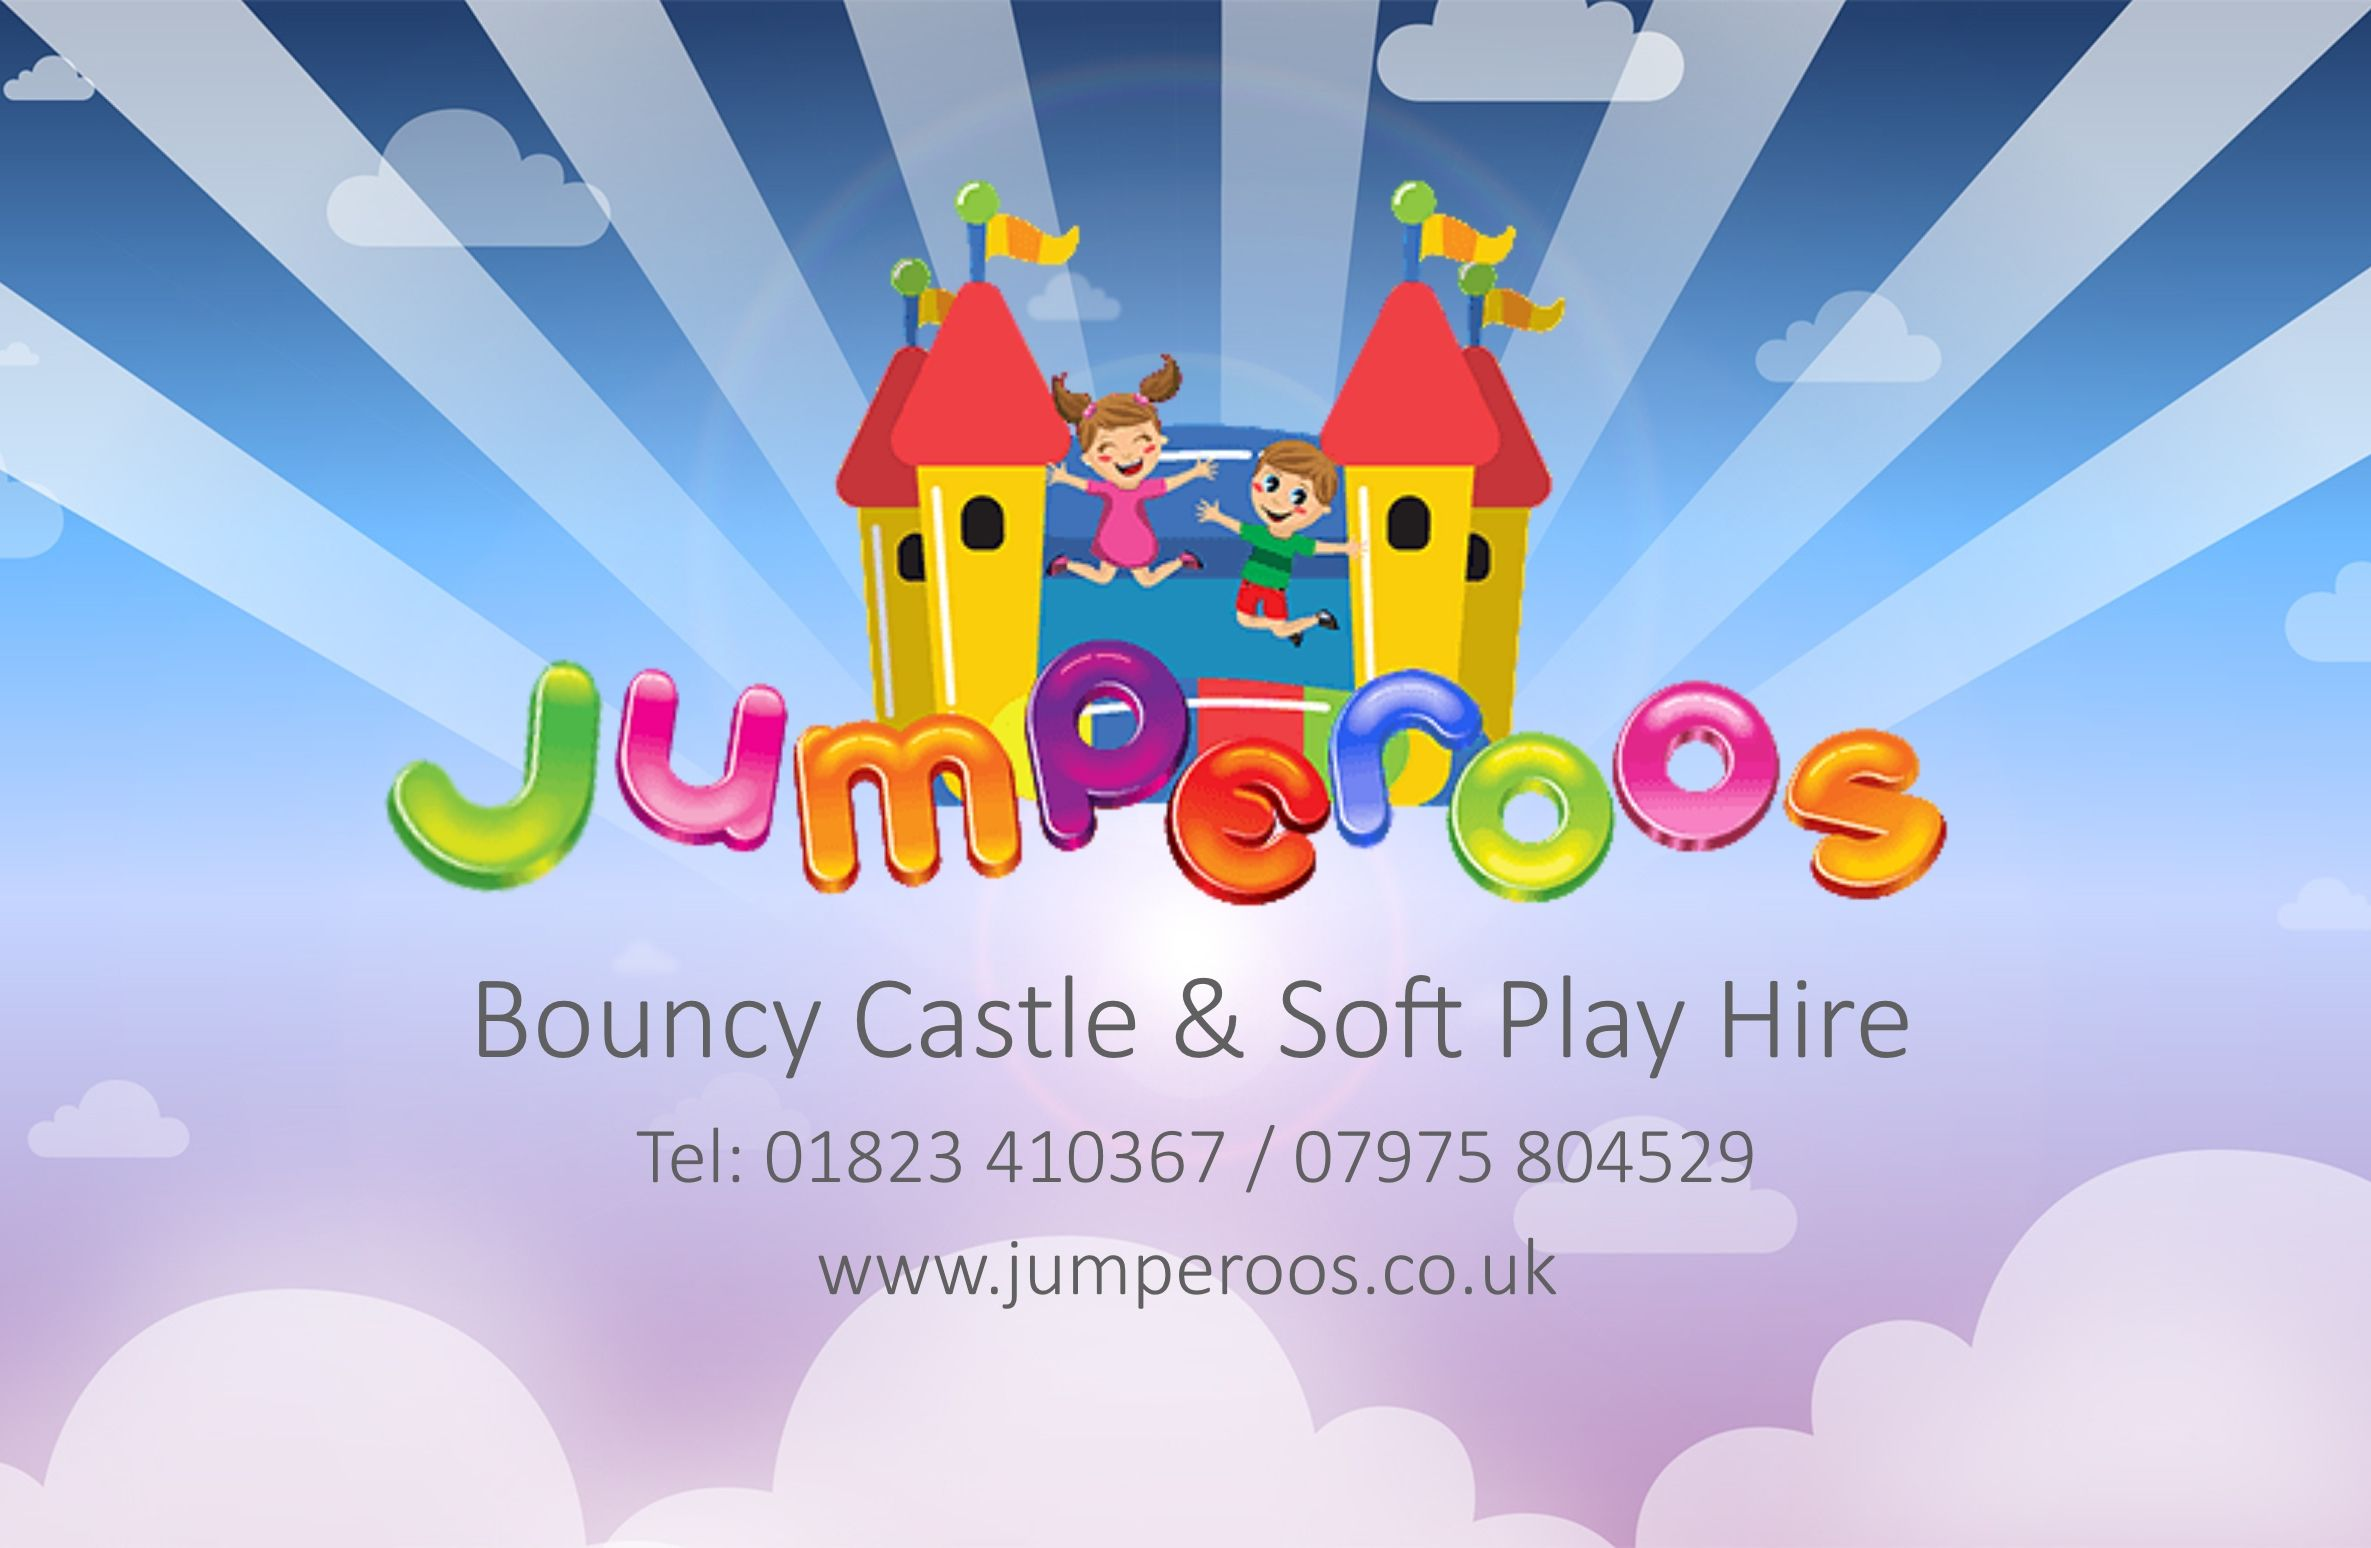 Jumperoos - Bouncy Castle & Soft Play Hire Taunton & Somerset www.jumperoos.co.uk